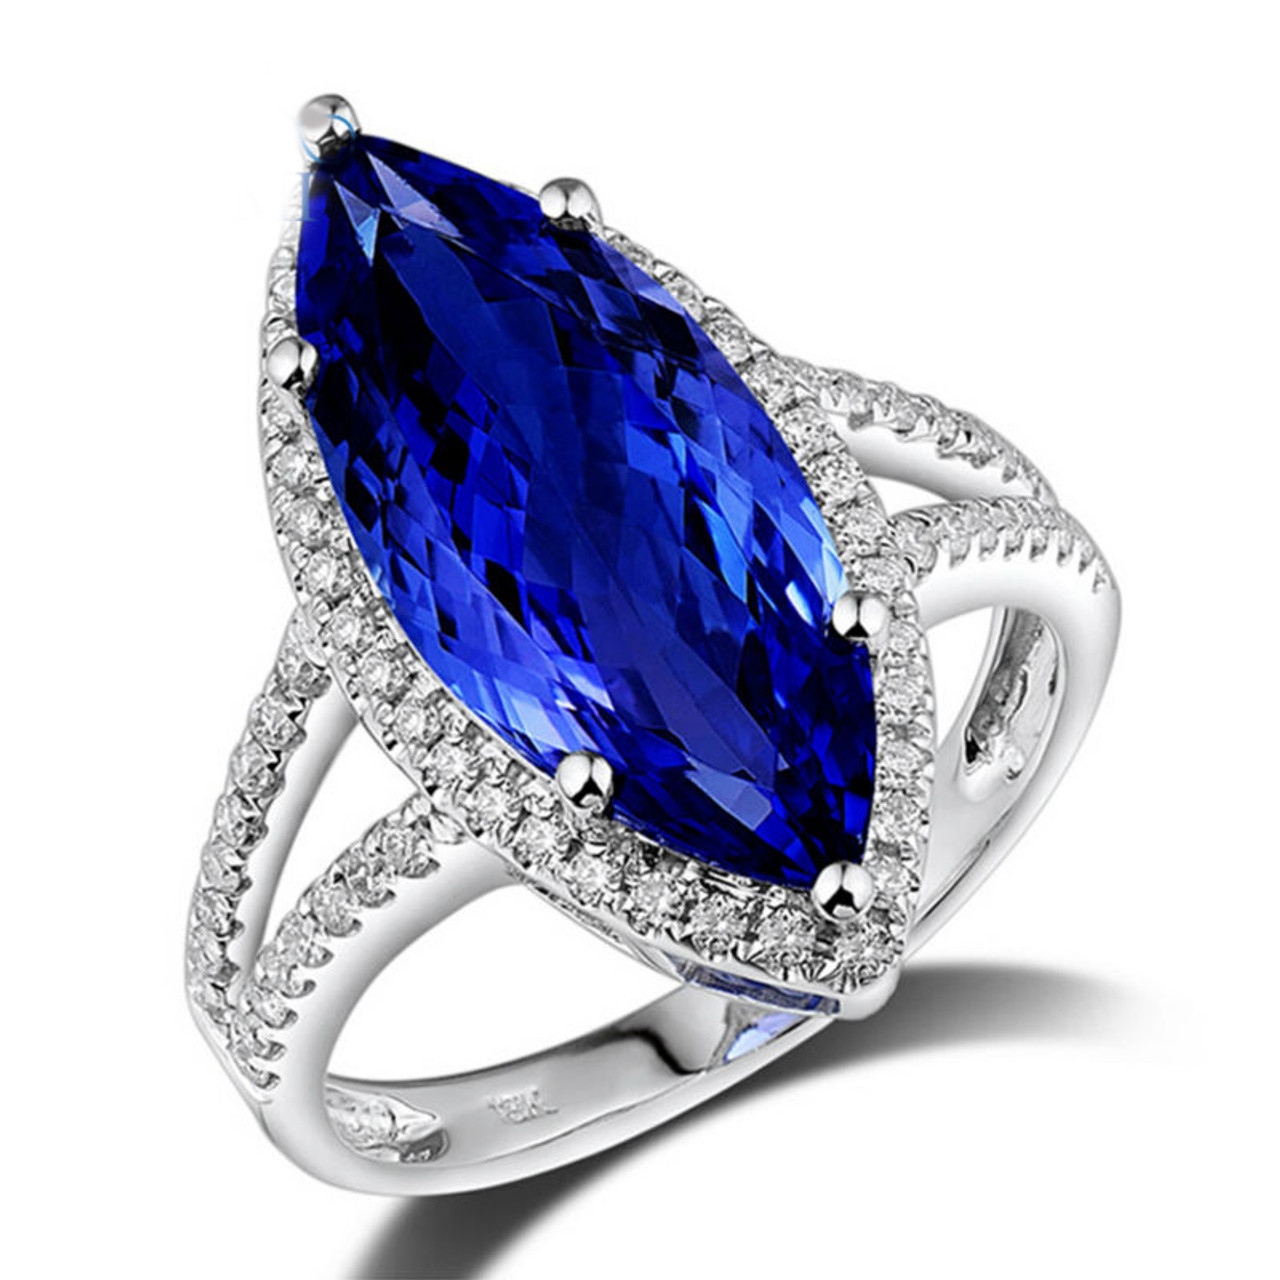 gemstones jewellery african index tanzanite carats detail main edited origin sold be gems to